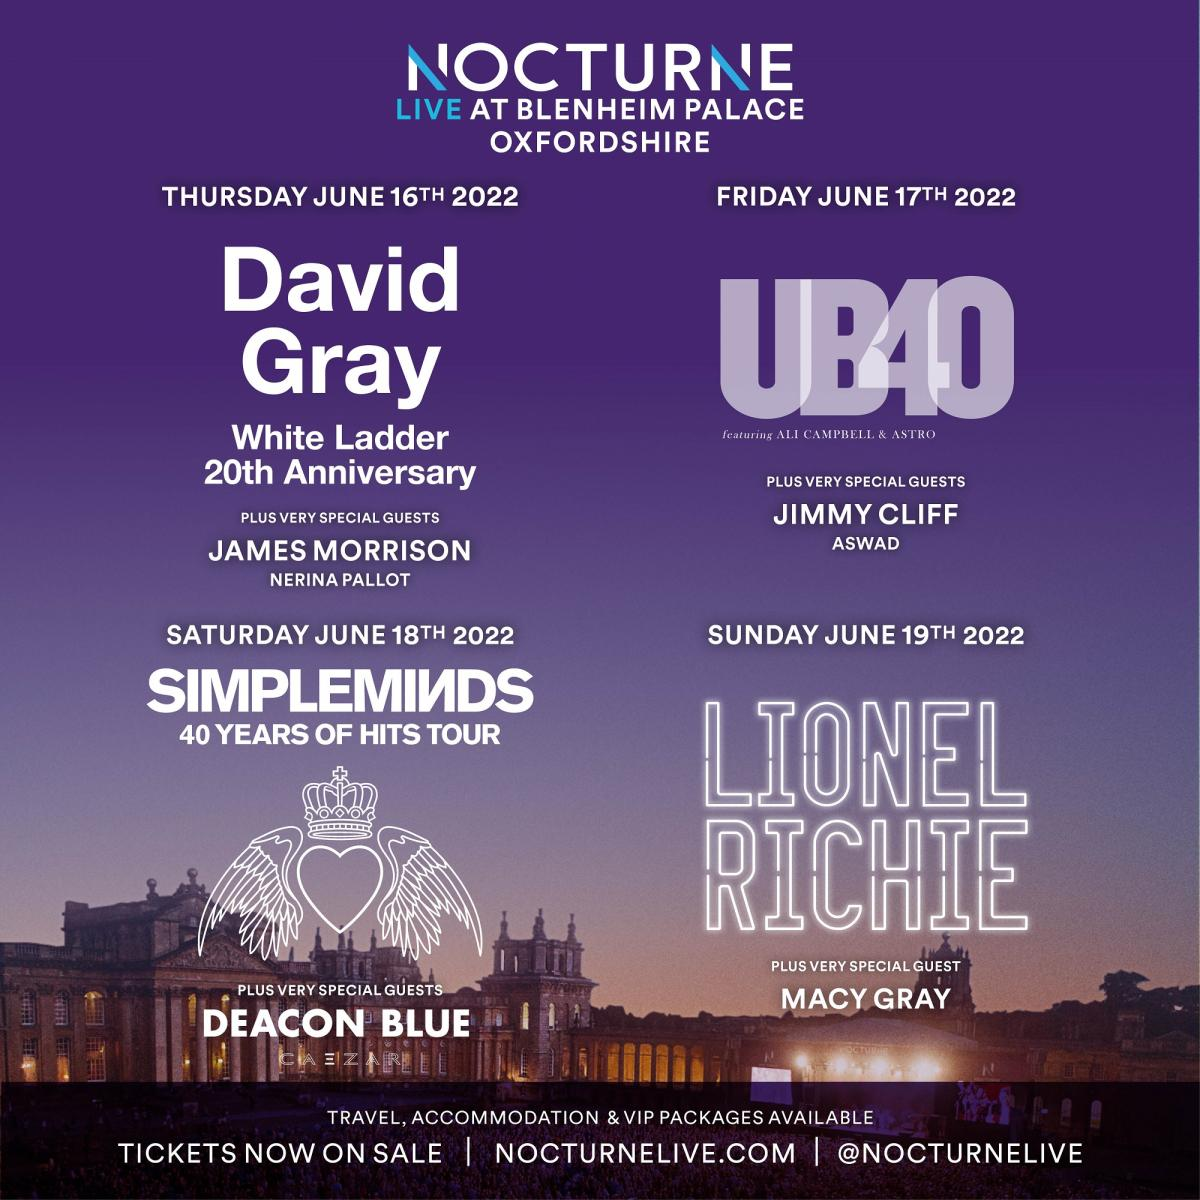 Nocturne Live 2022 at Blenheim Palace - Poster 01